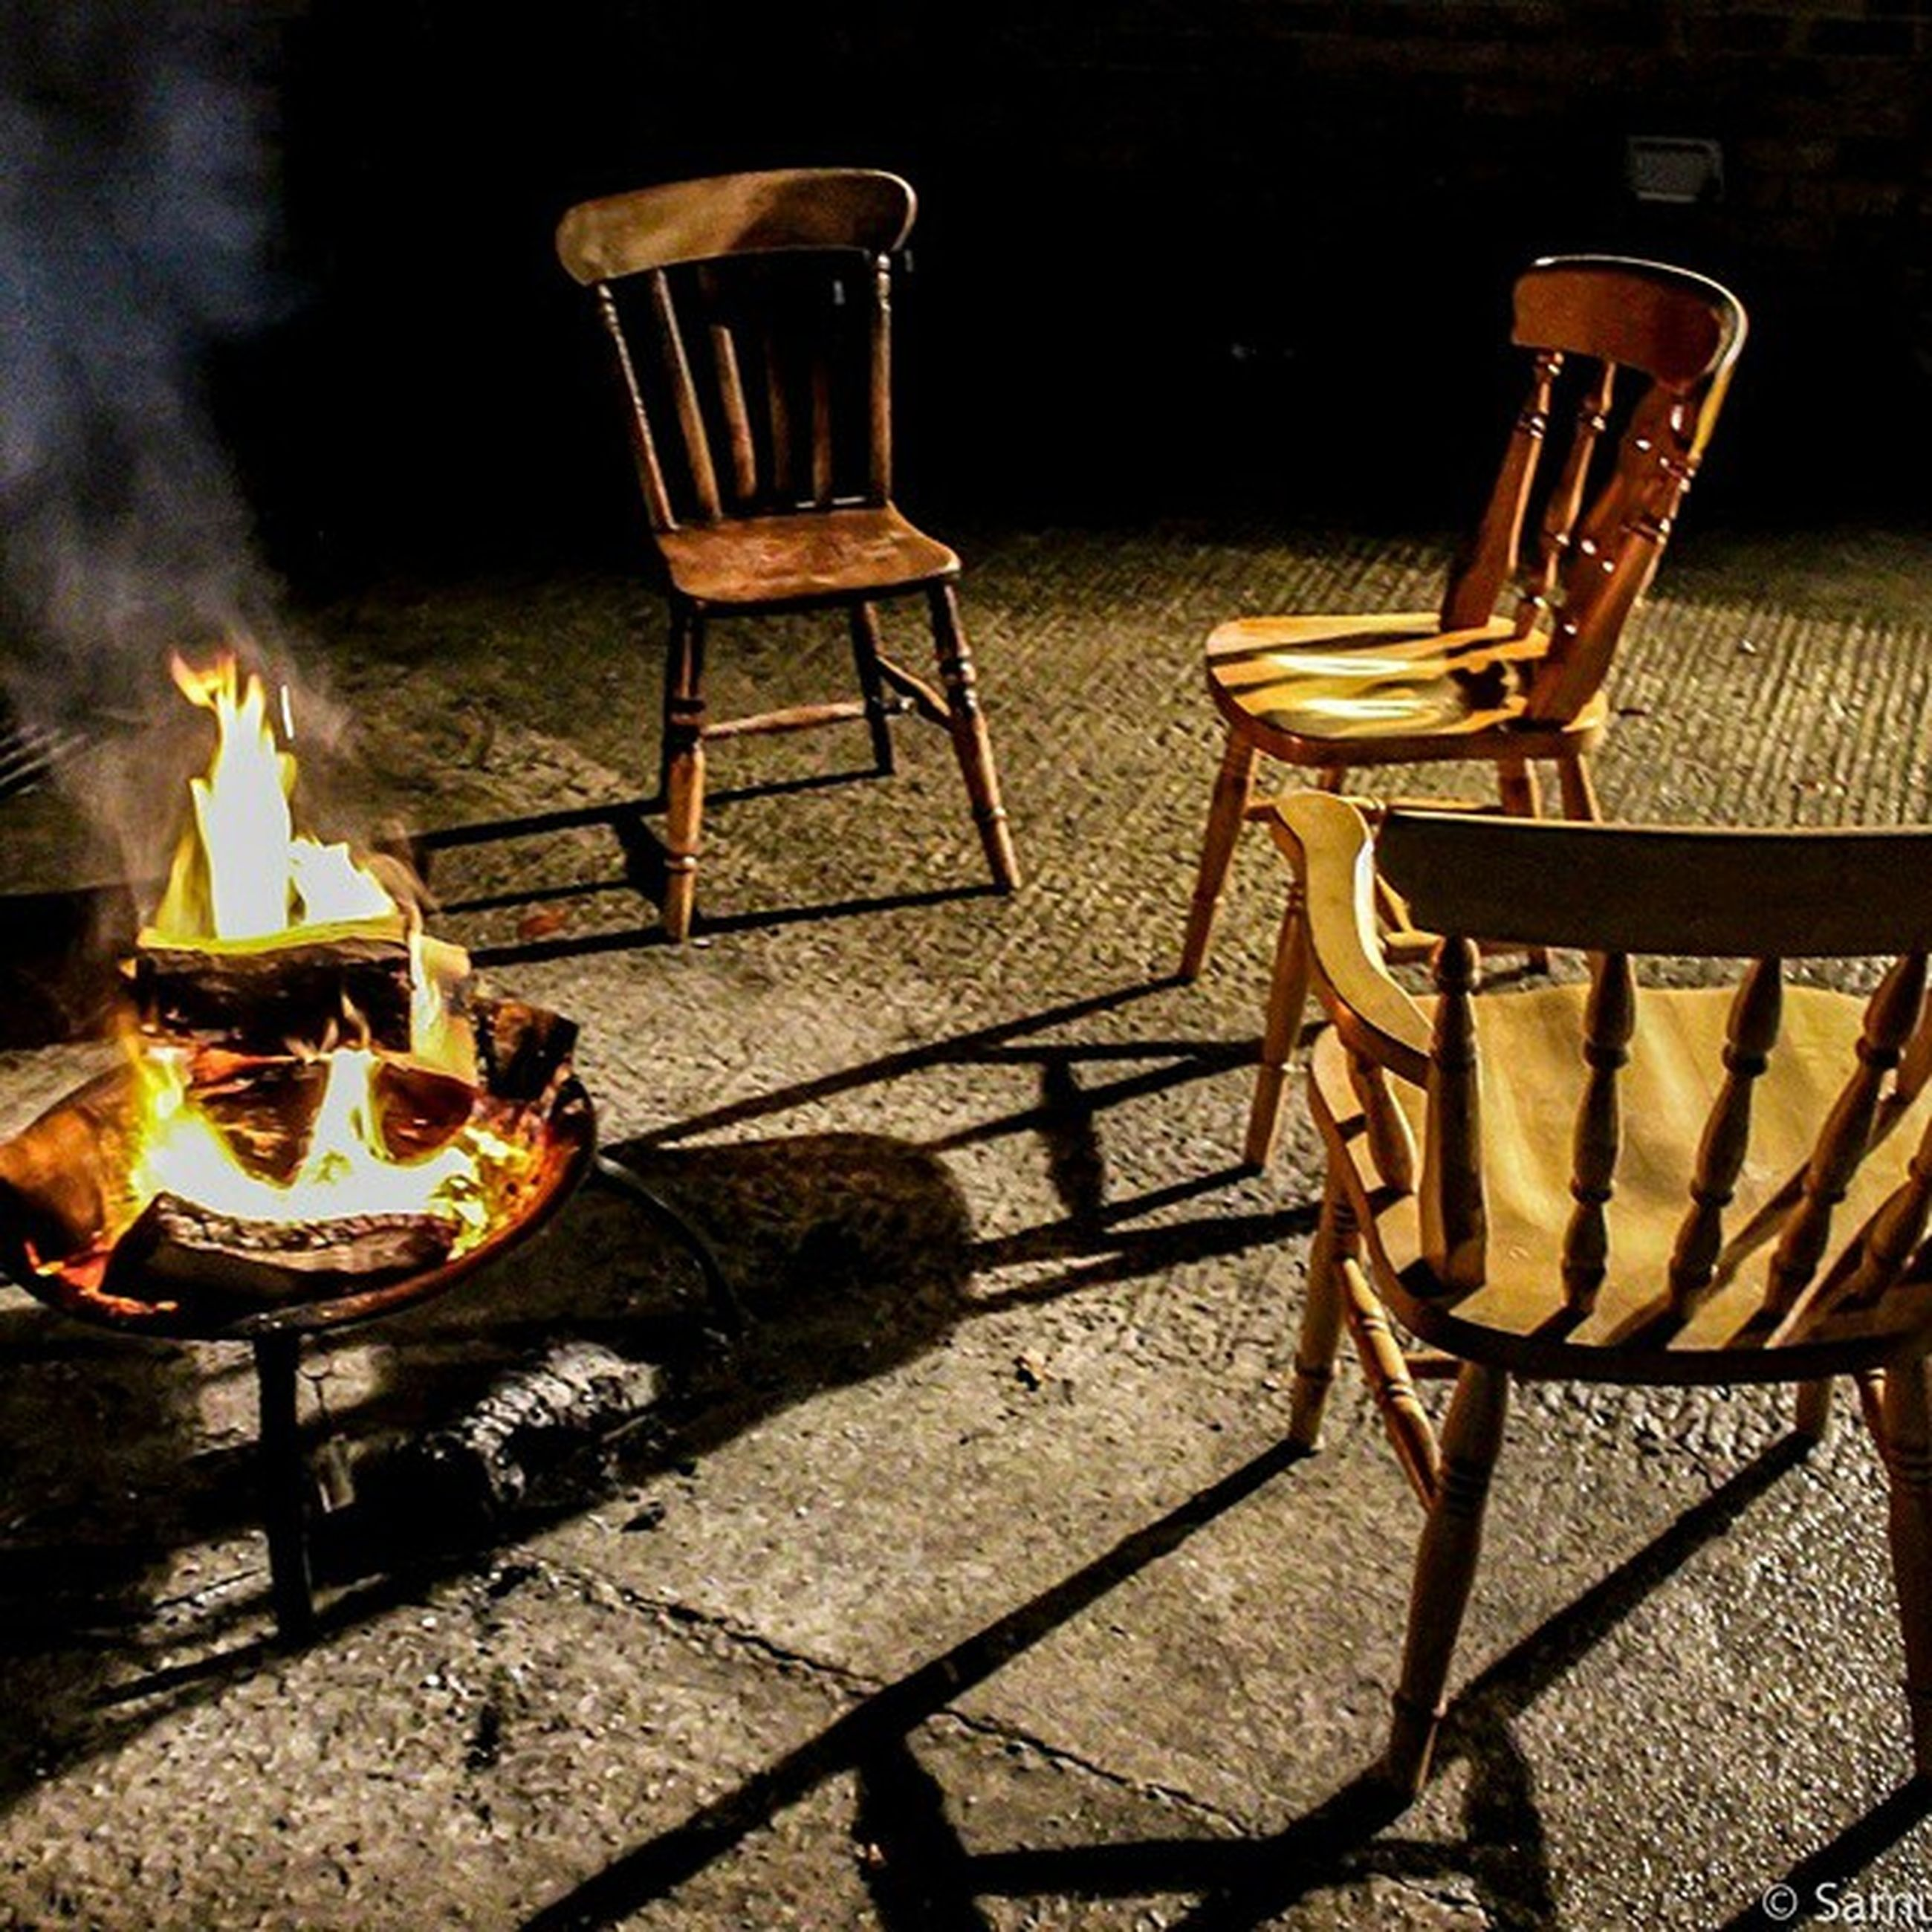 illuminated, night, indoors, fire - natural phenomenon, burning, flame, metal, high angle view, table, heat - temperature, still life, wood - material, chair, no people, food and drink, candle, absence, shadow, metallic